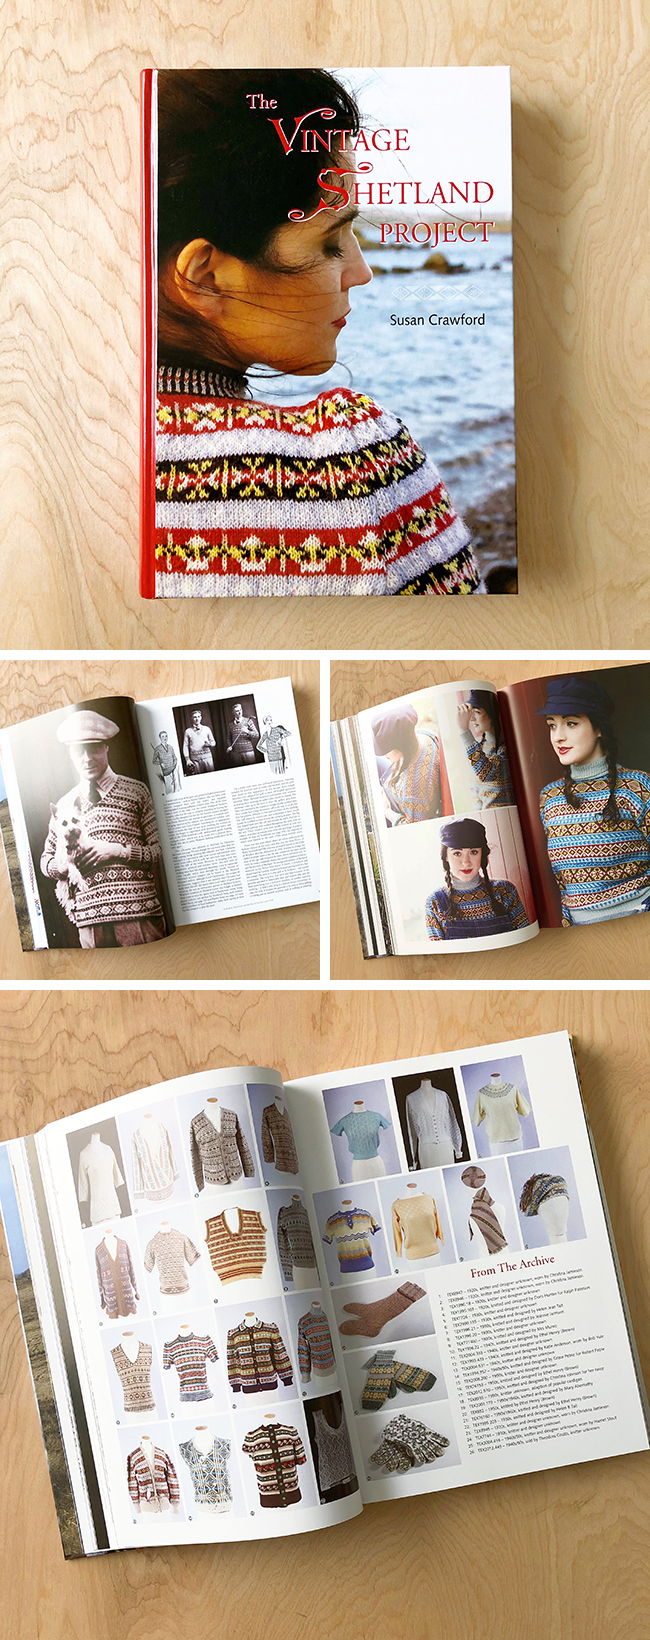 Must-have books: The Vintage Shetland Project